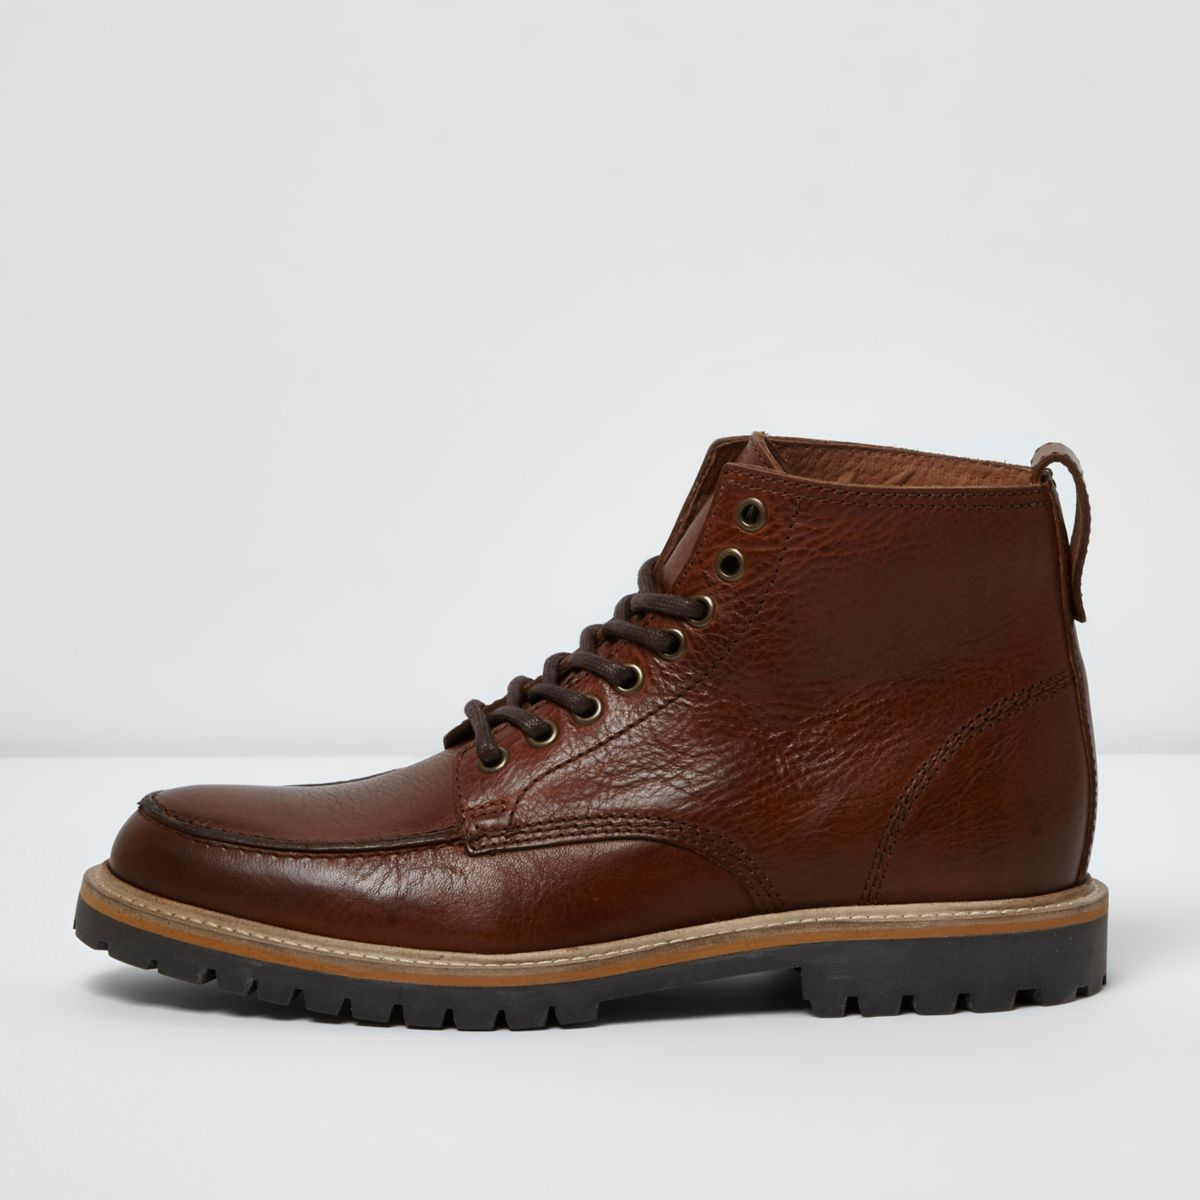 Tan brown lace-up leather boots